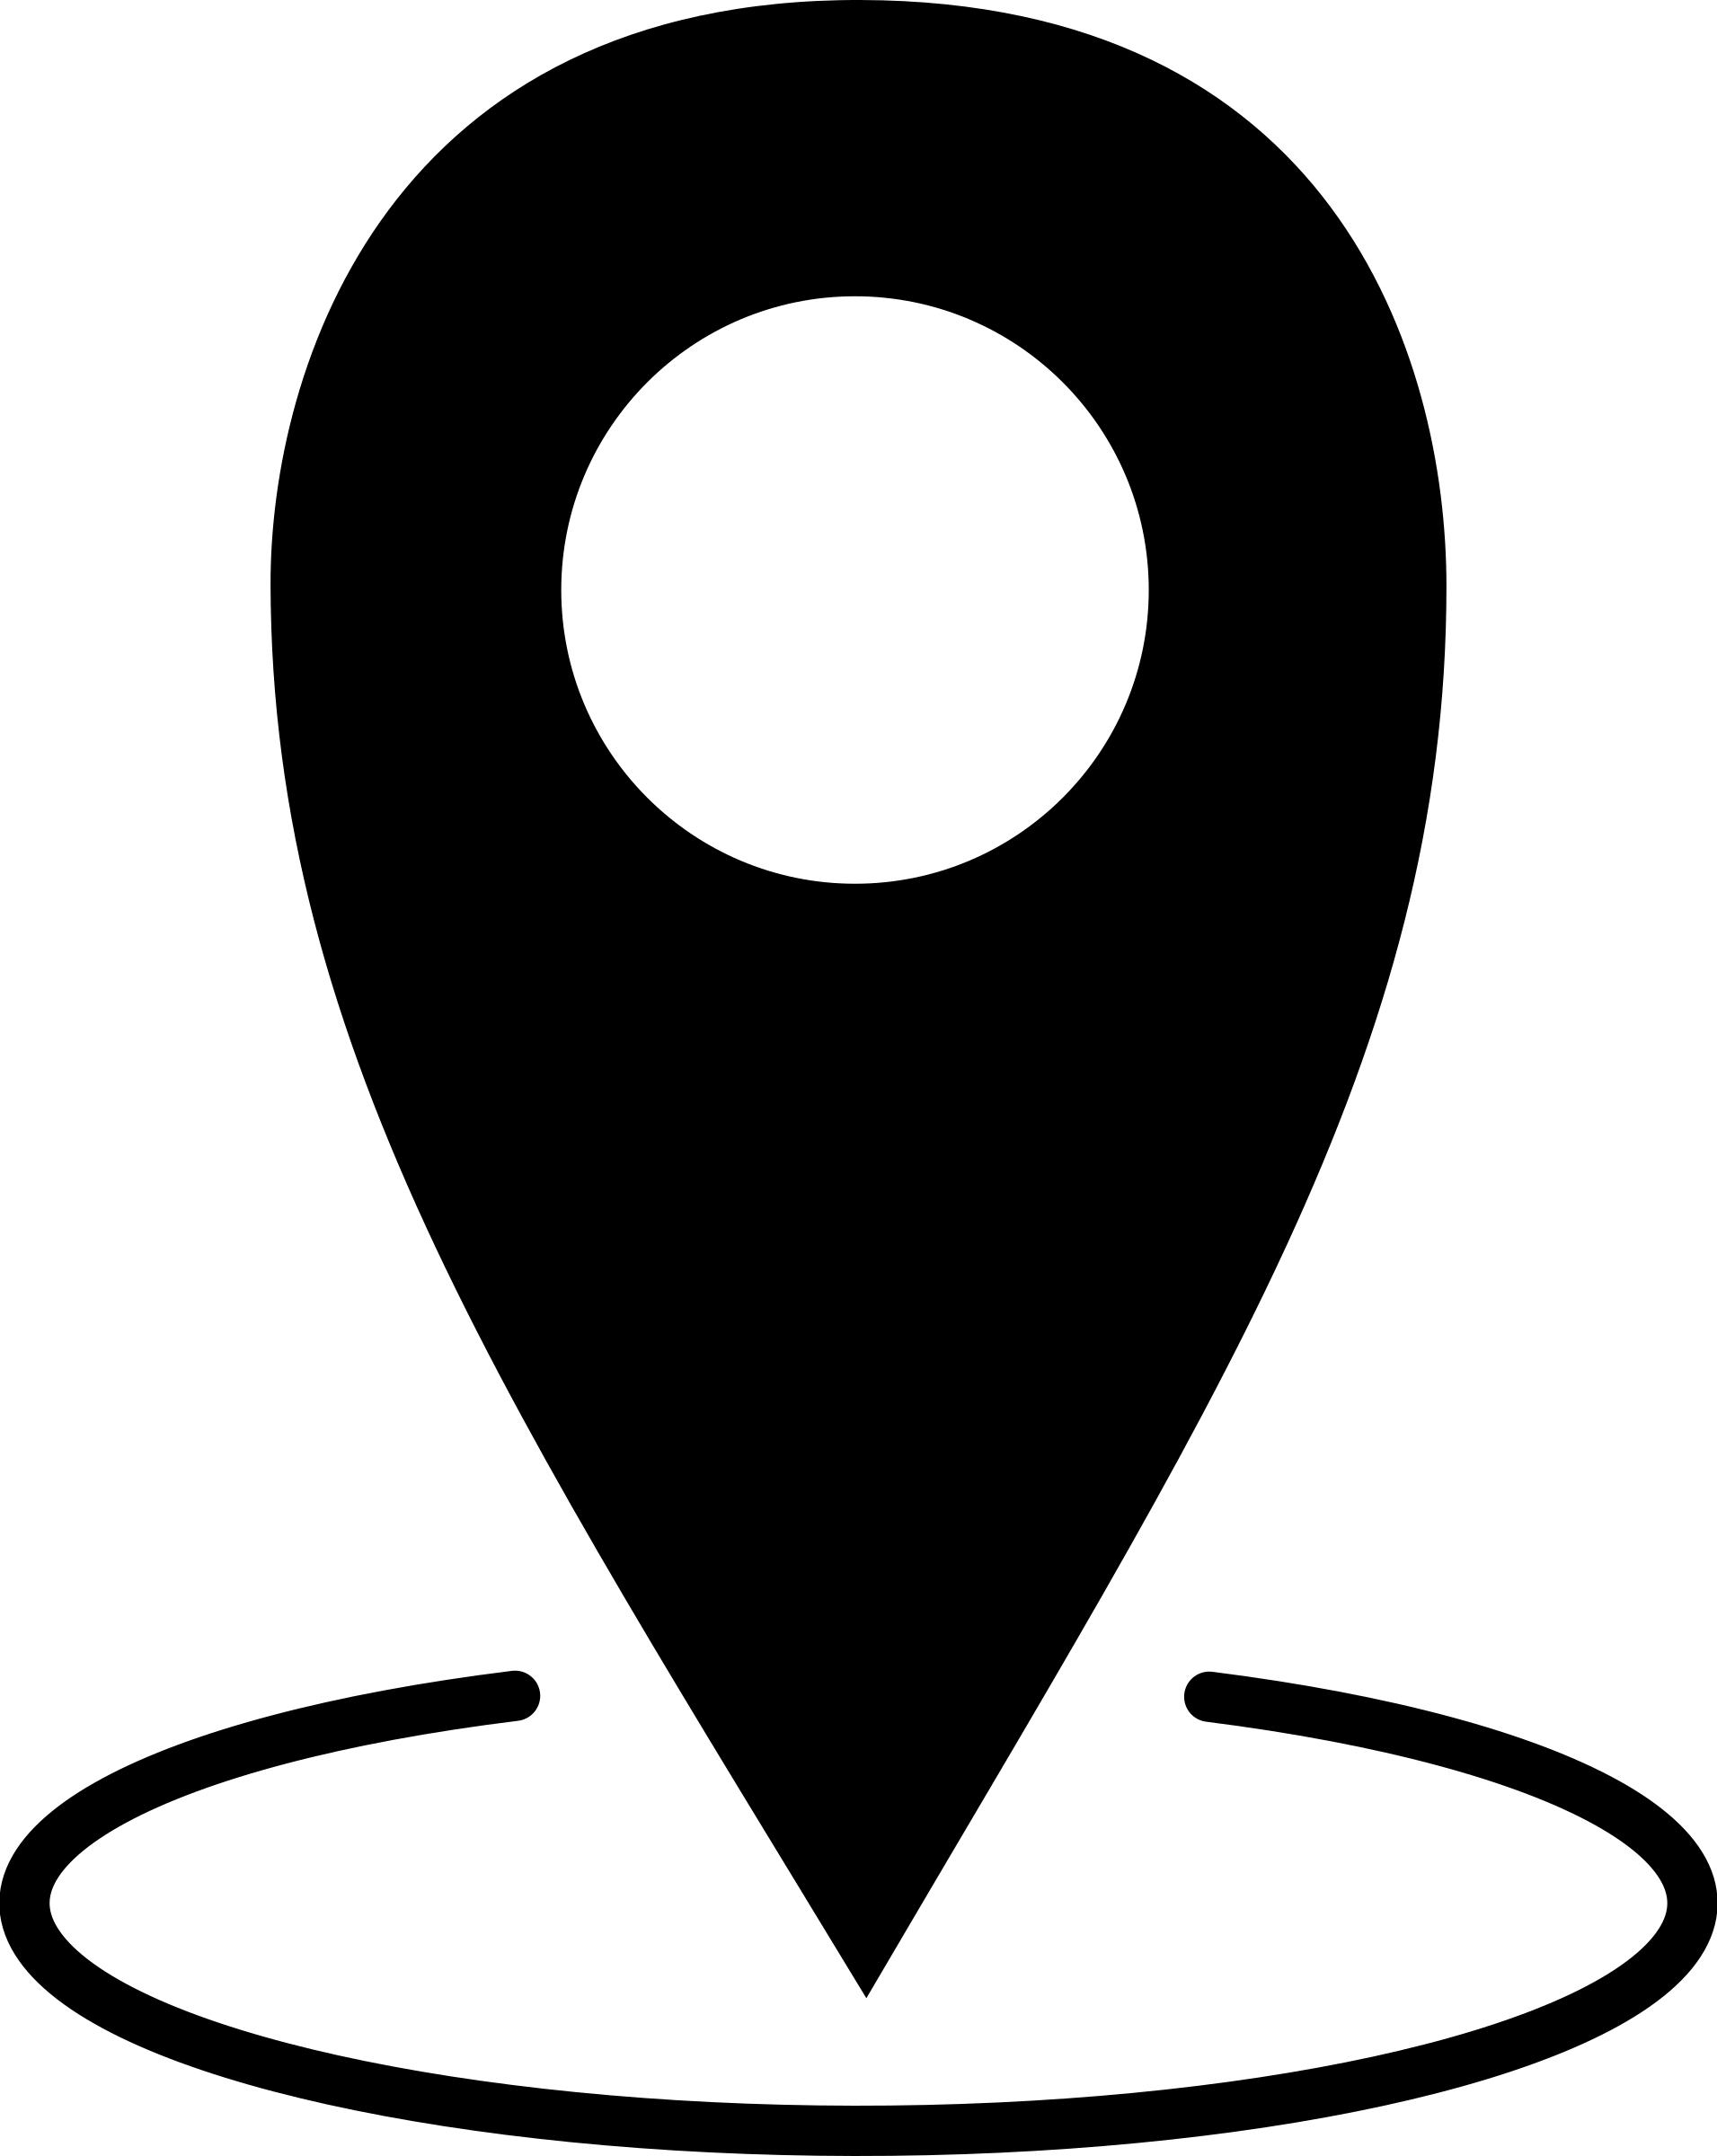 Gps clipart. Location symbol icons png